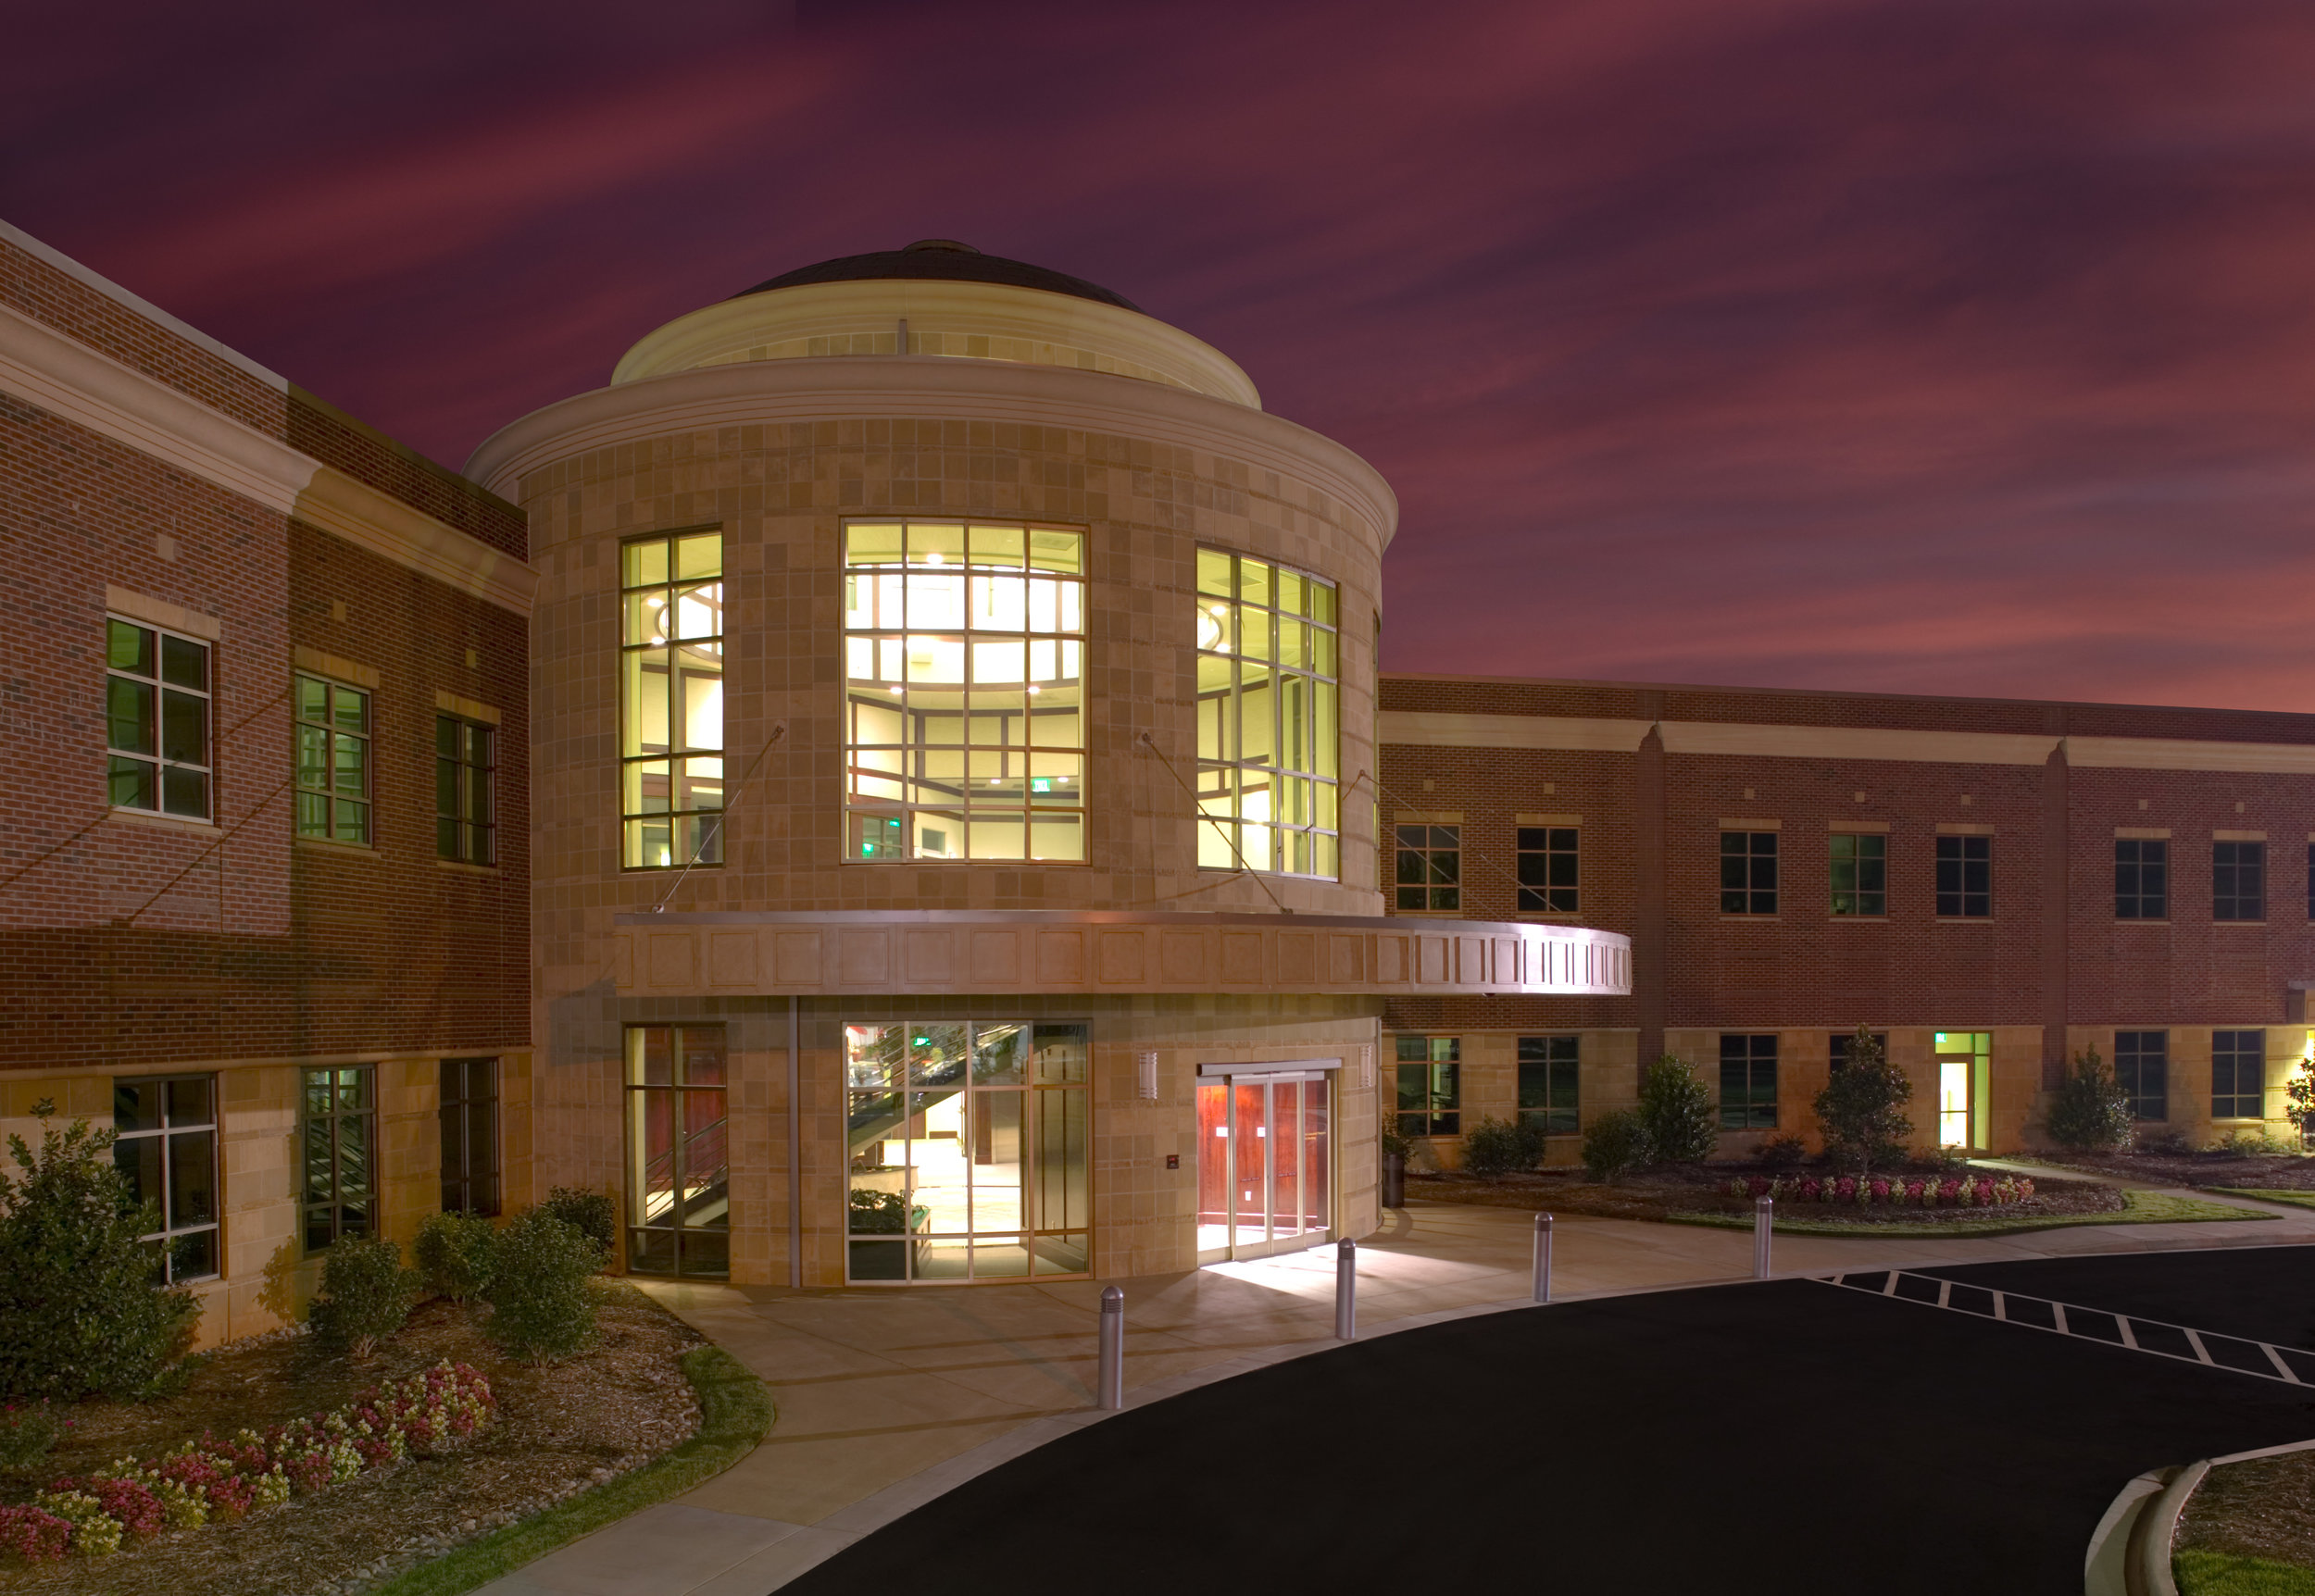 ADW-Office+Mixed-Use-Rosedale-Medical-Office-Huntersville-NC-3.jpg